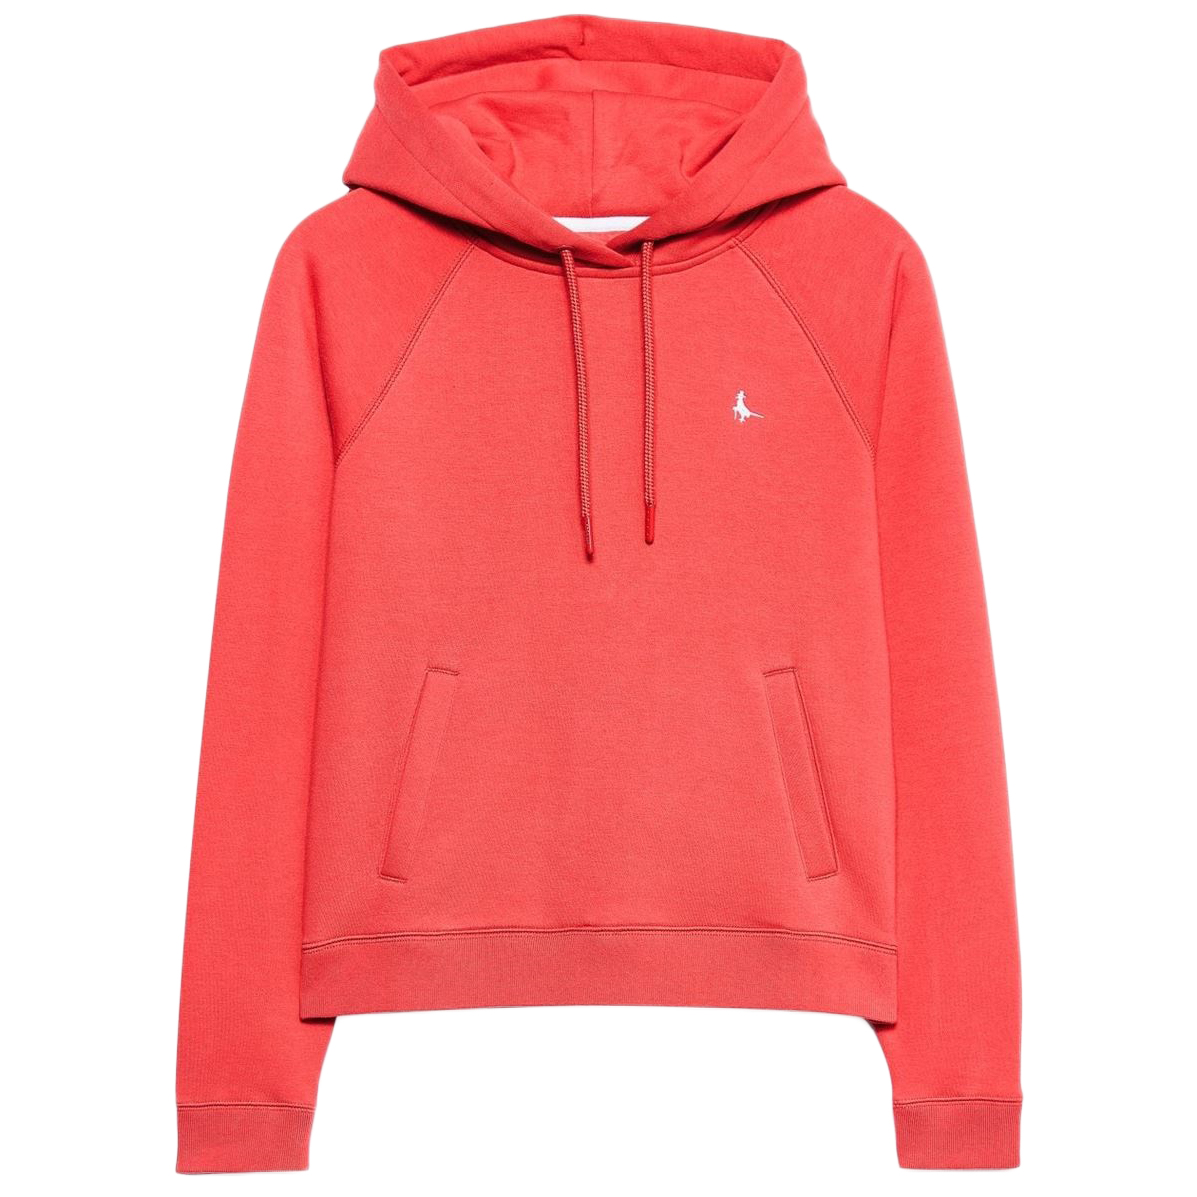 Jack Wills Women's Collingdon Raglan Hoodie - Red, 2